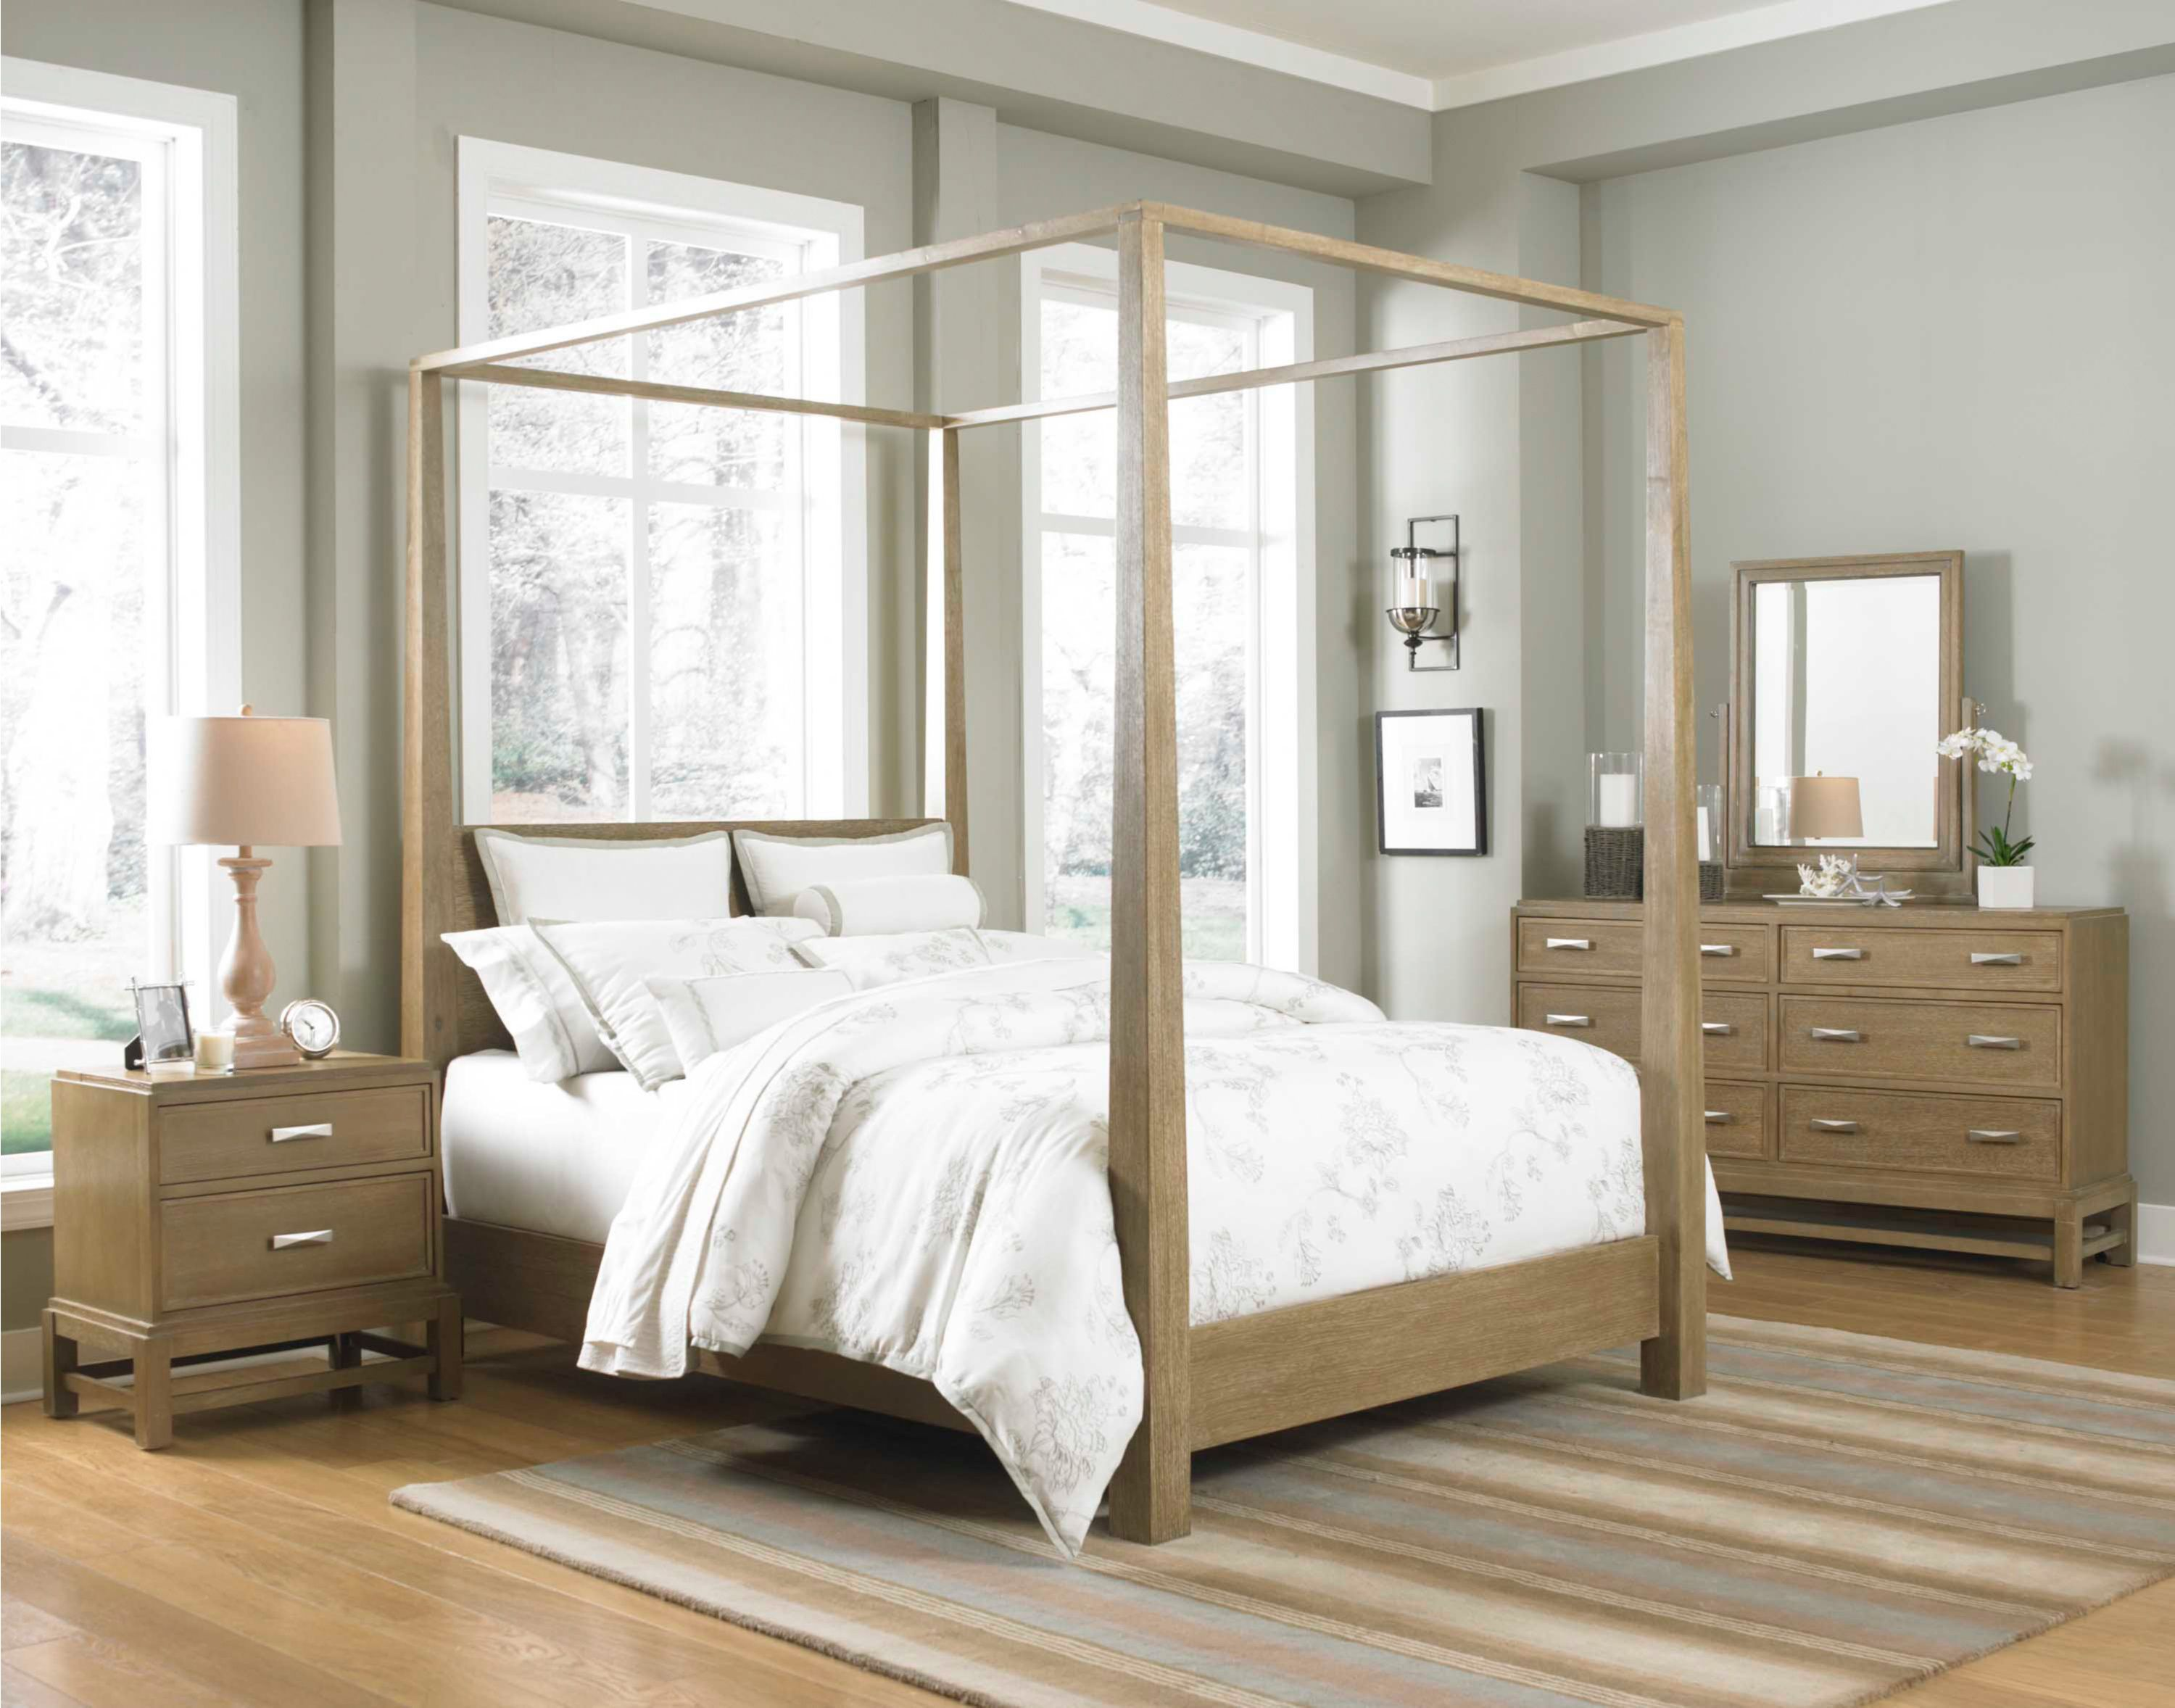 Best Canopy Beds Ideas For Master Bedroom Bed Canopies Bed 640 x 480